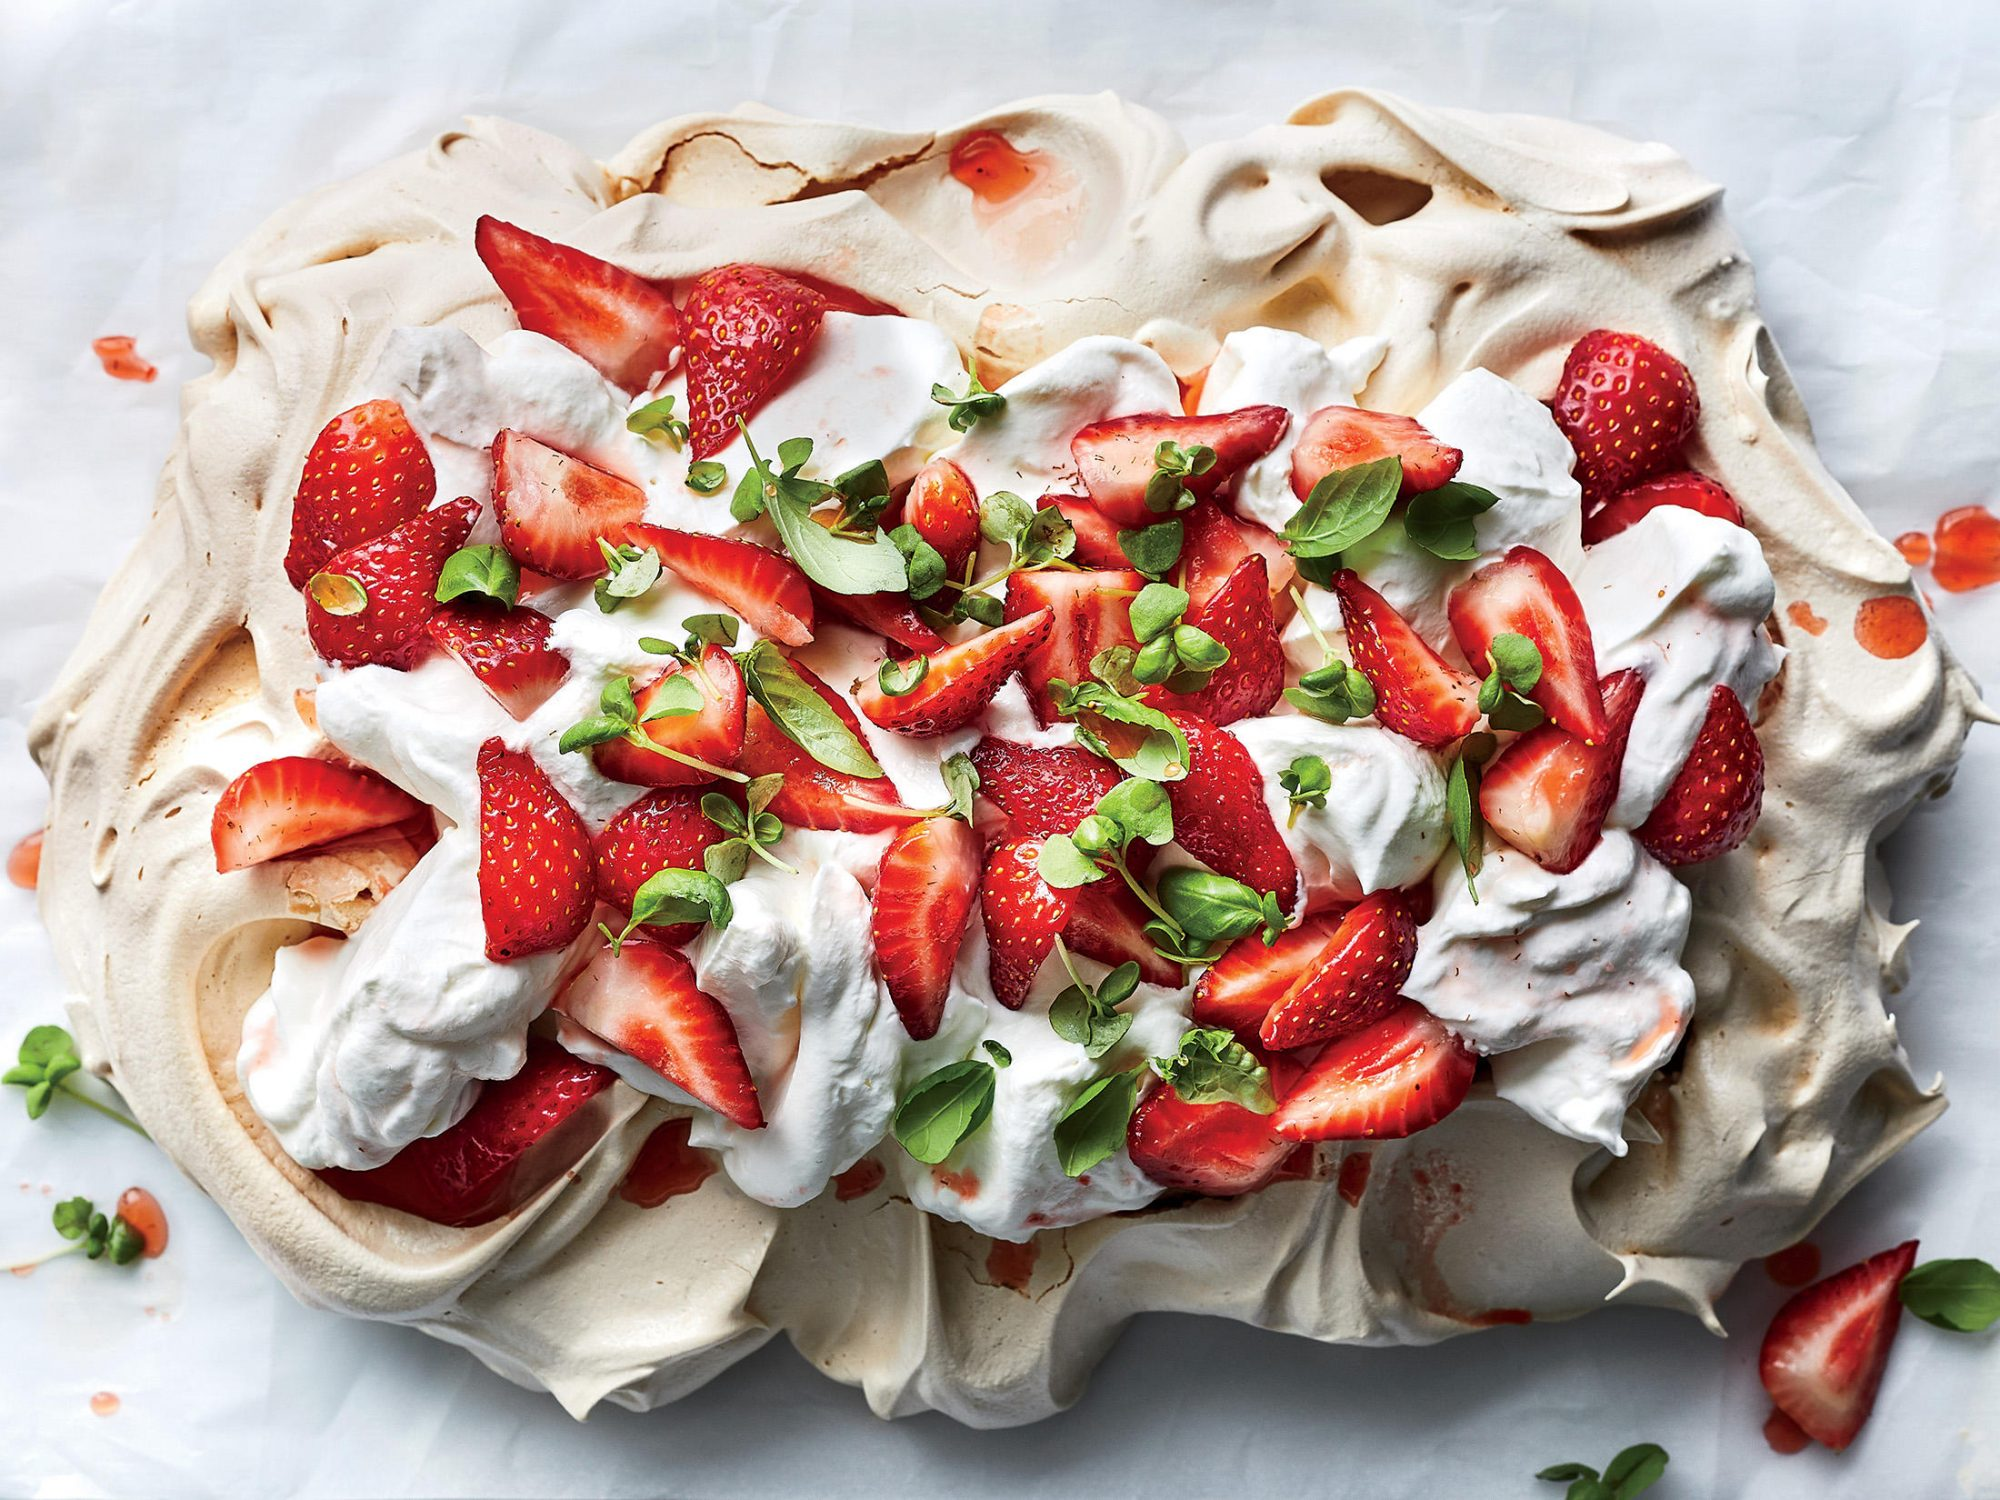 Strawberry, Basil, and Balsamic  Slablova